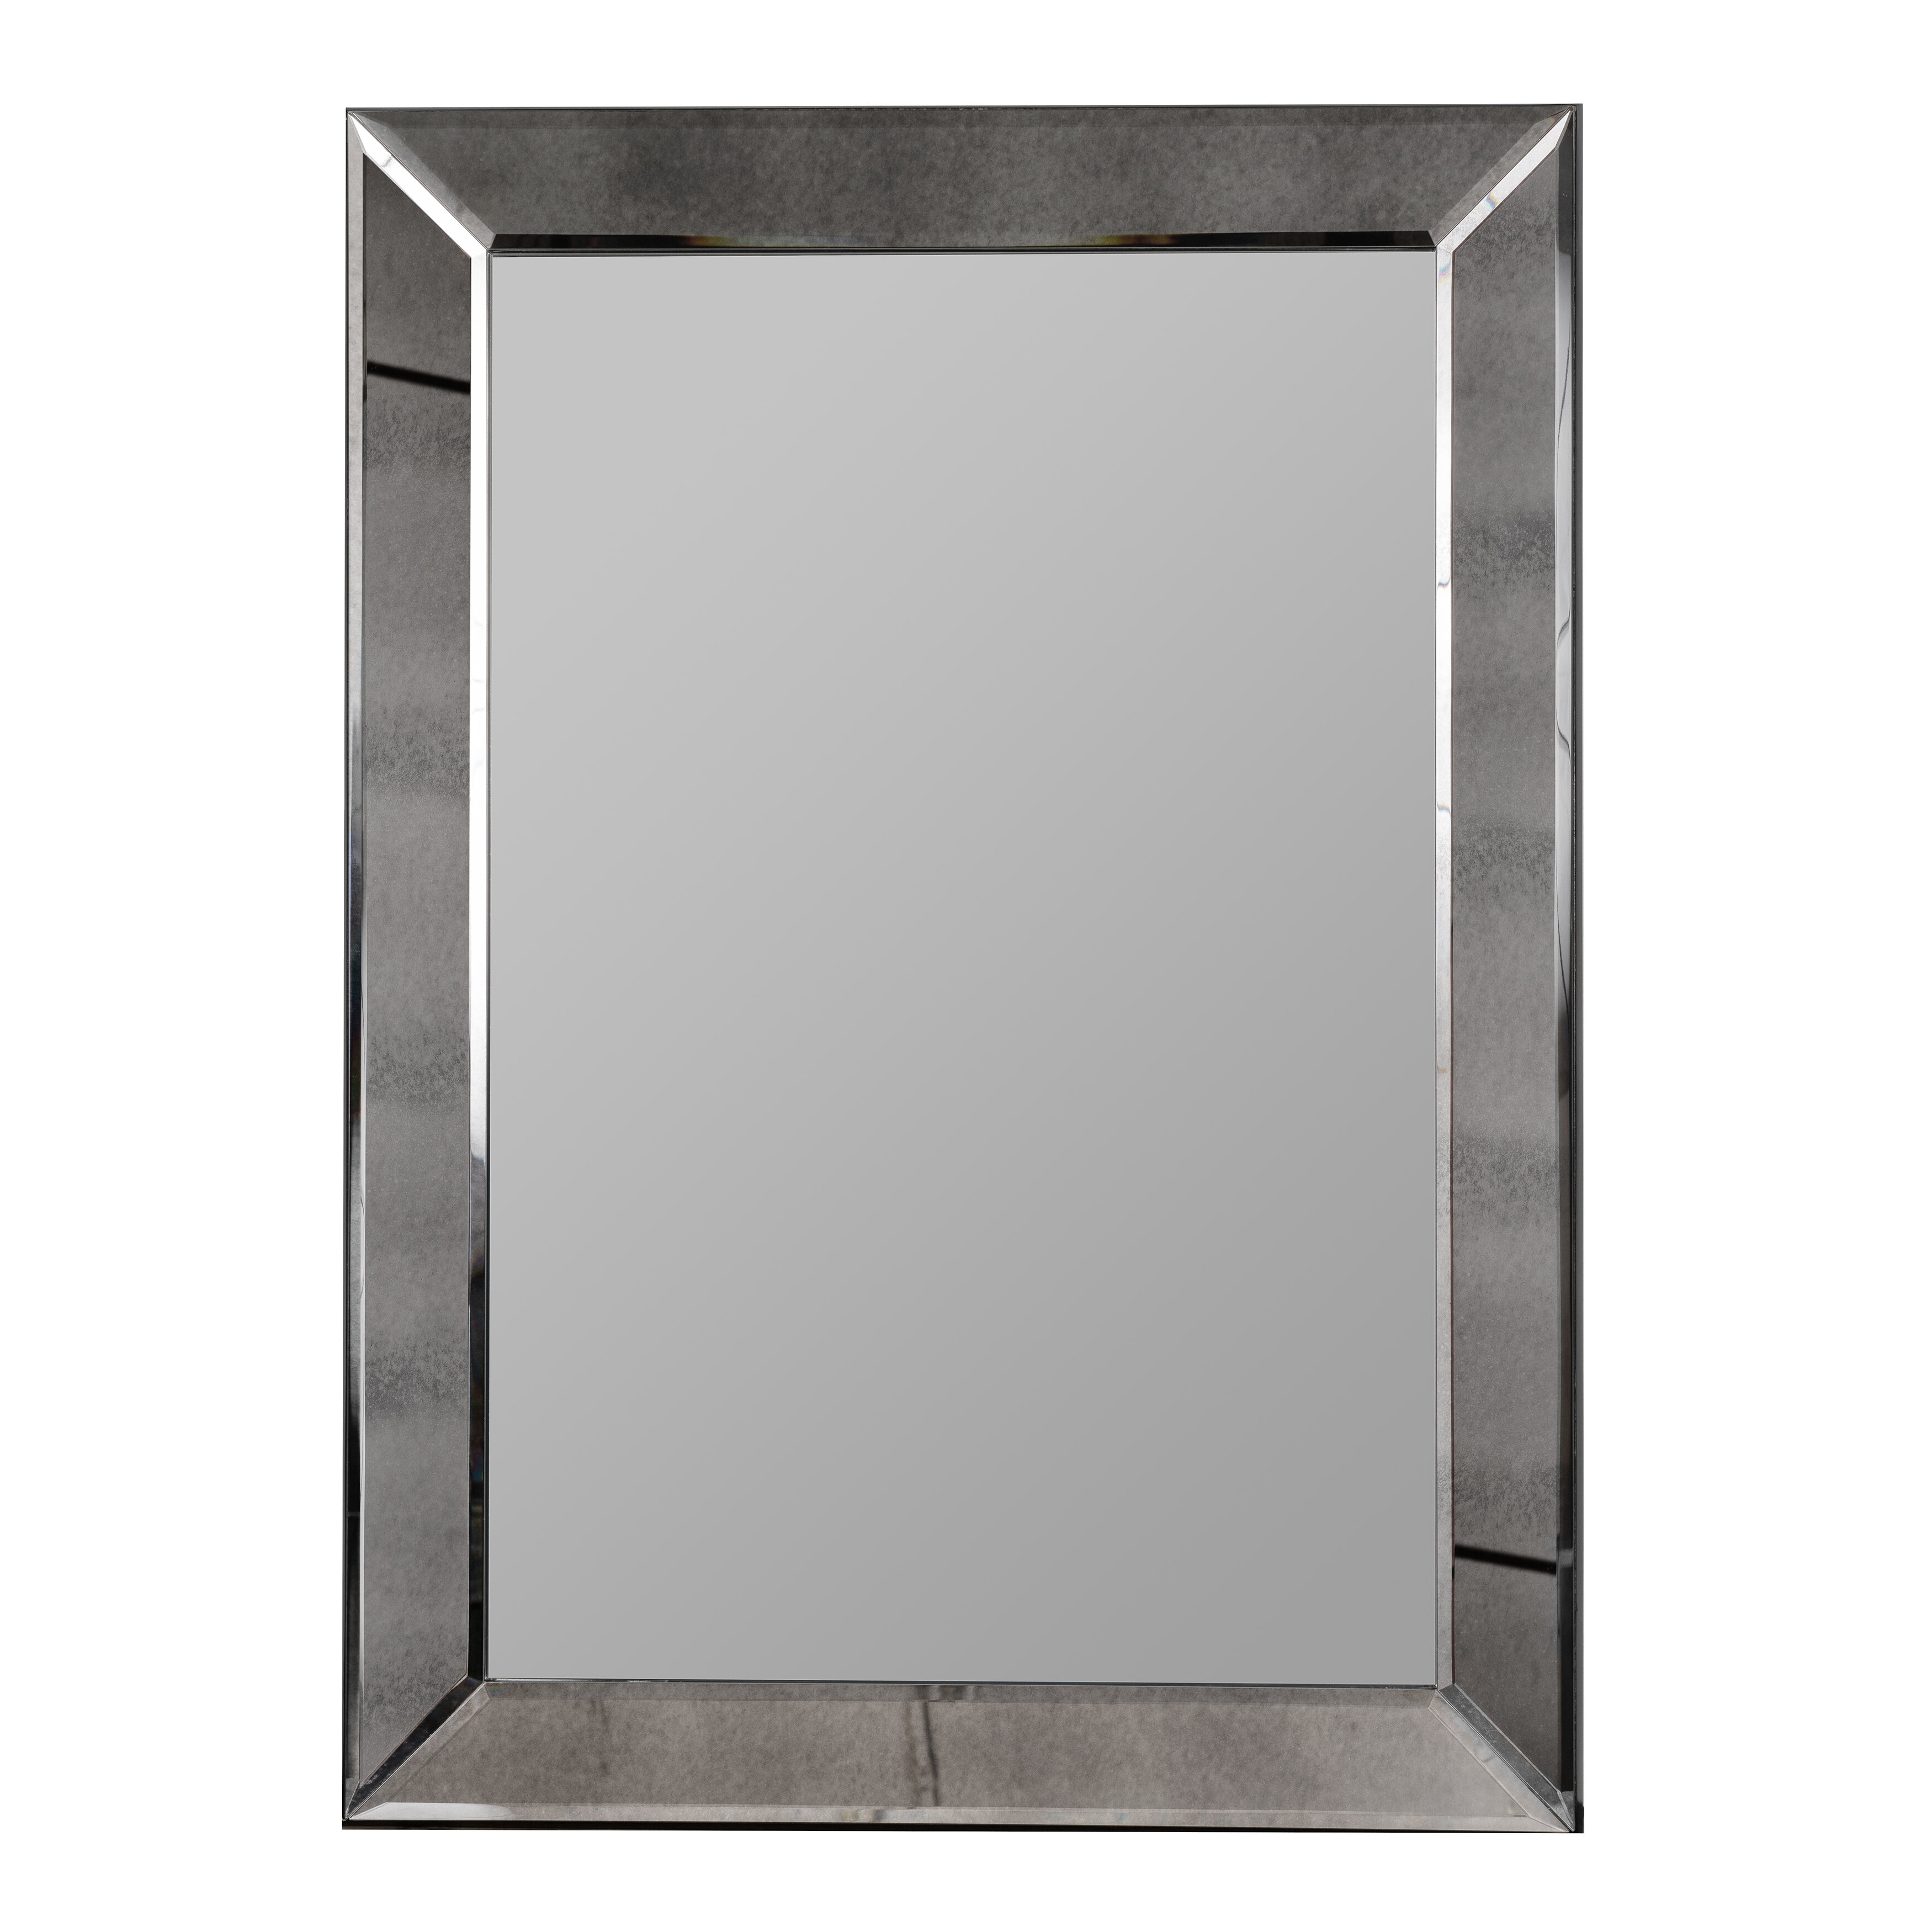 Modern & Contemporary Asian Inspired Mirror | Allmodern Intended For Berinhard Accent Mirrors (Image 14 of 20)